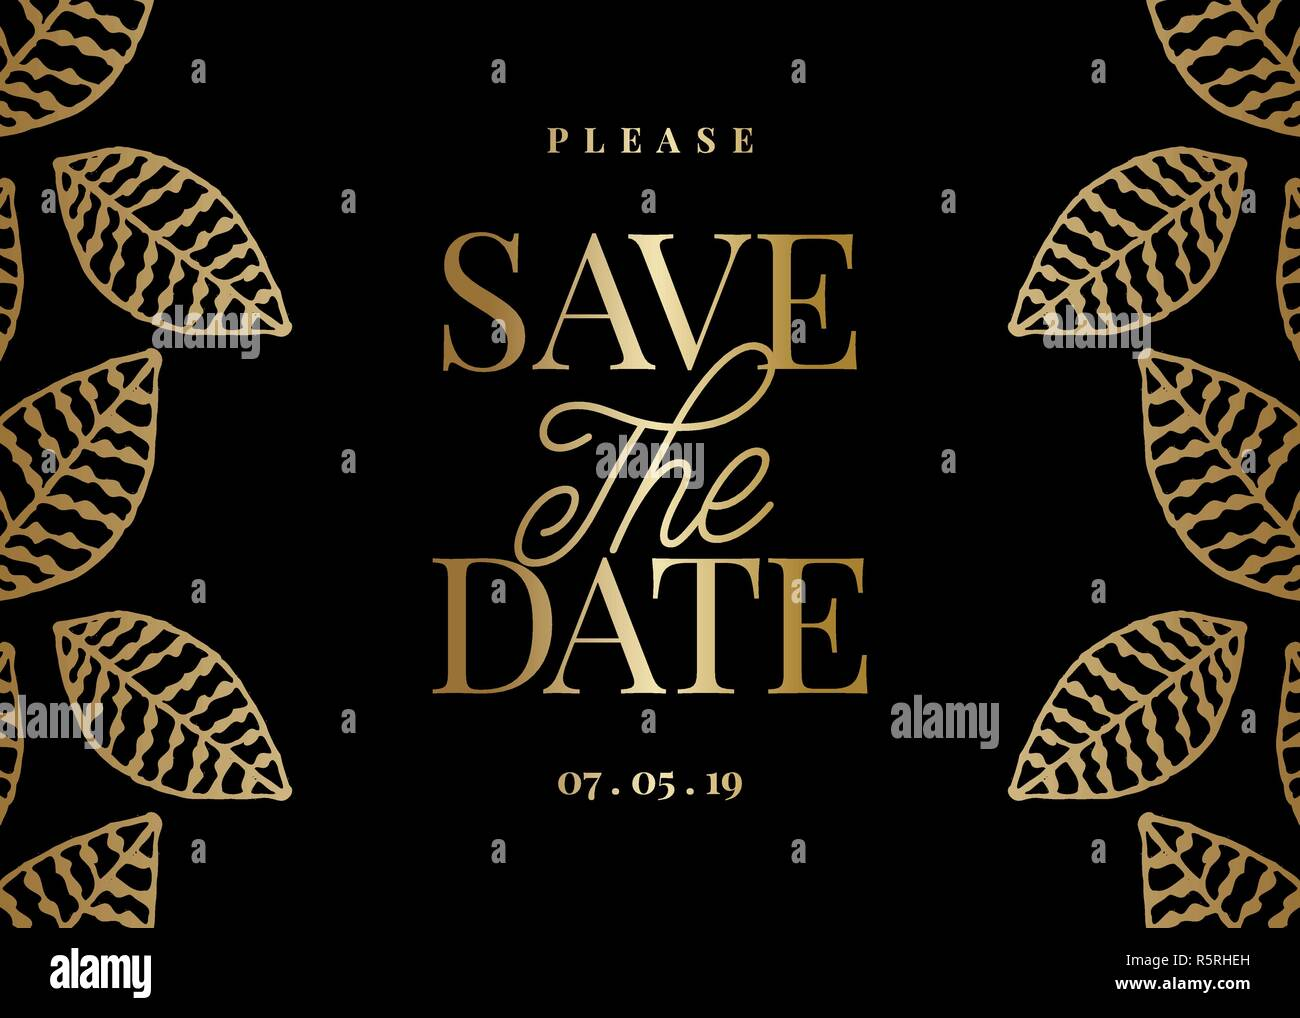 save the date template with hand drawn golden leaf shapes and sample